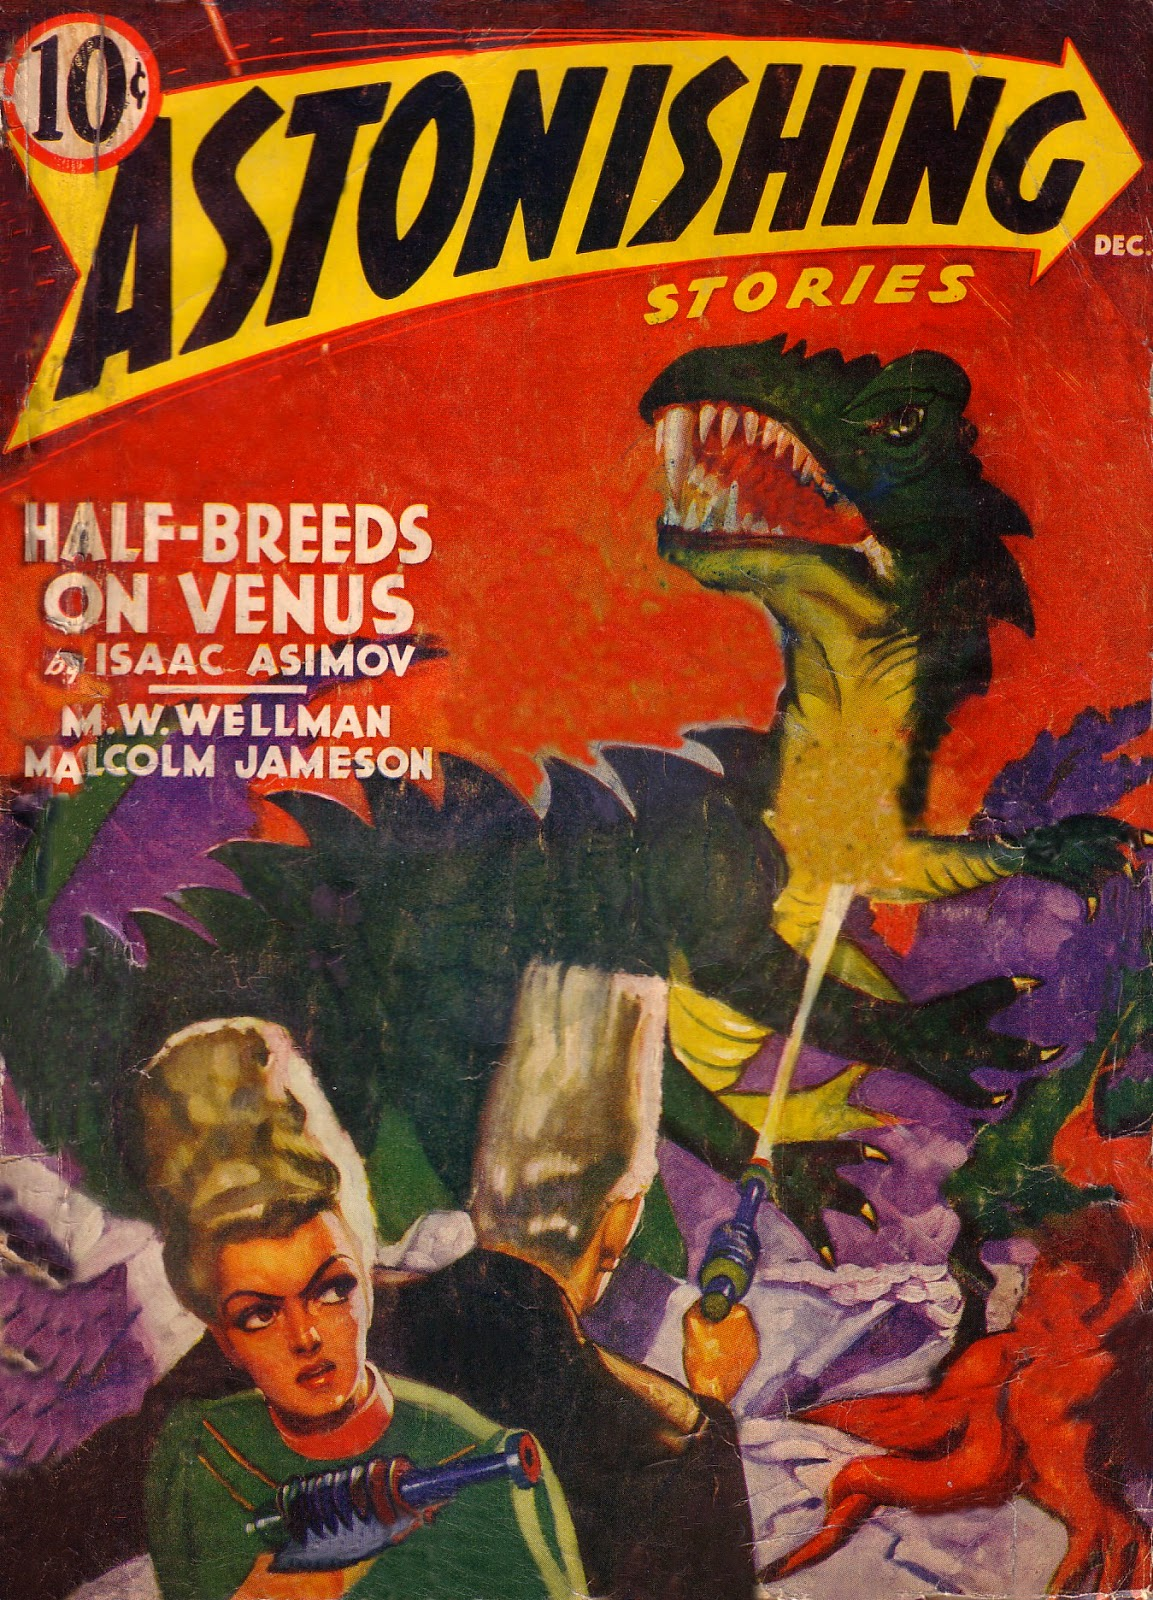 http://pulpcovers.com/half-breeds-on-venus/